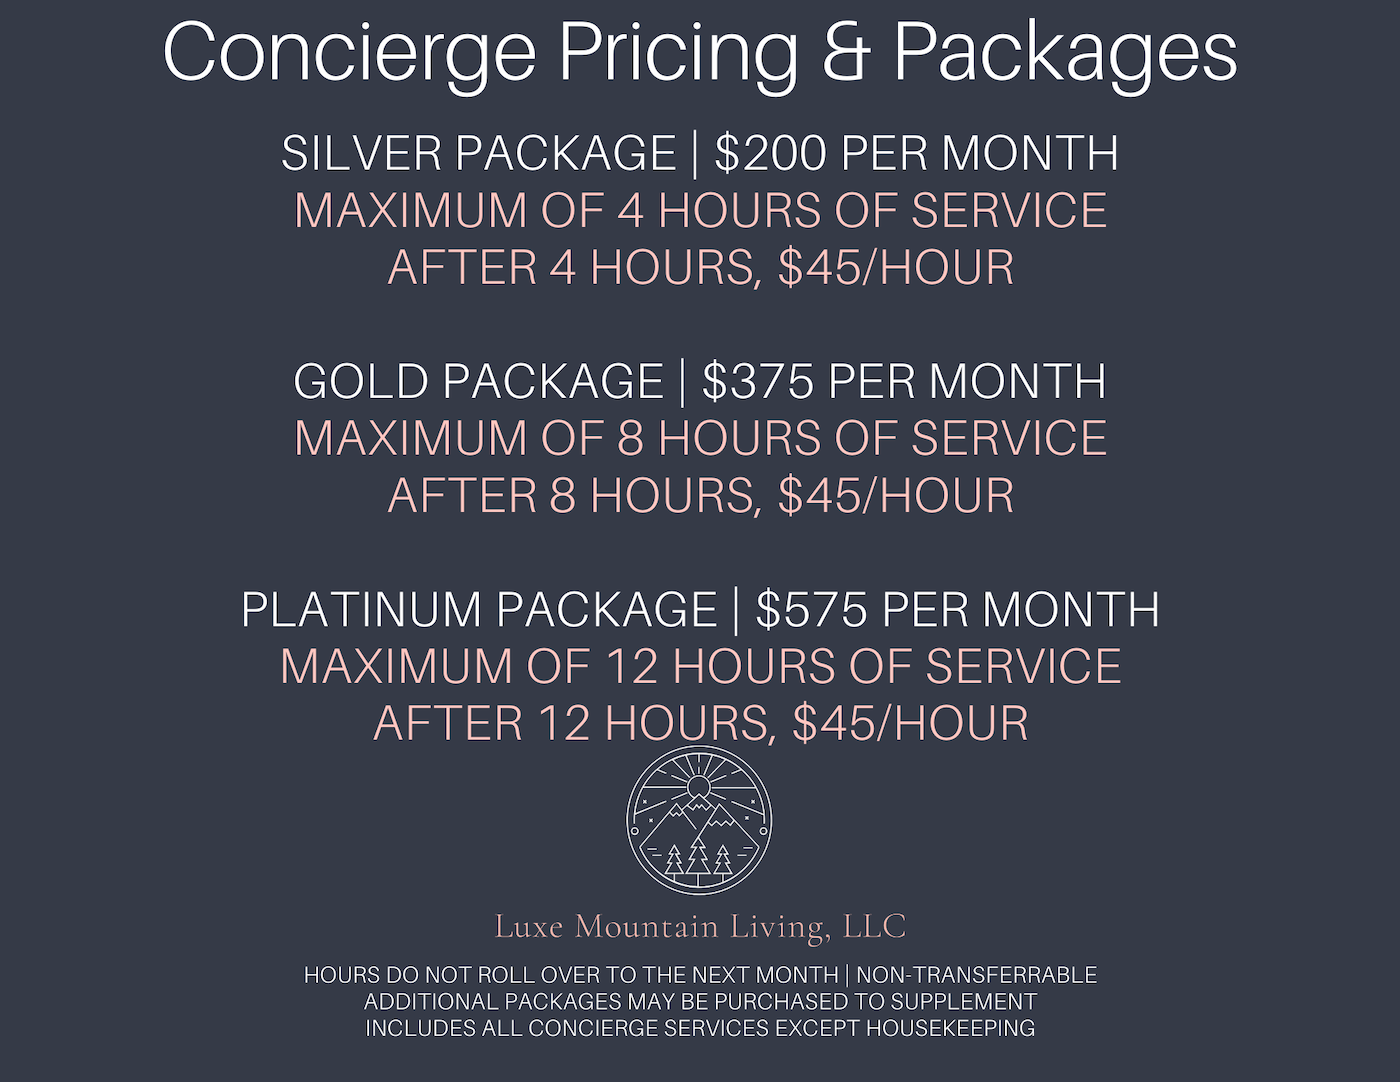 Concierge Pricing & Packages. Silver package is $200 per month, maximum of 4 hour of service, after 4 hours, it is $45 per hour. Gold package is $375 per month, maximum of 8 hours of service, after 8 hours it is $45 per hour. Platinum package is $575 per month, maximum of 12 hours of service, after 12 hours it is $45 per hour. Luxe Mountain Living, LLC. Hours do not oll over to the next month, non-transferrable, additional packages may be purchased to supplement, includes all concierge services except housekeeping.